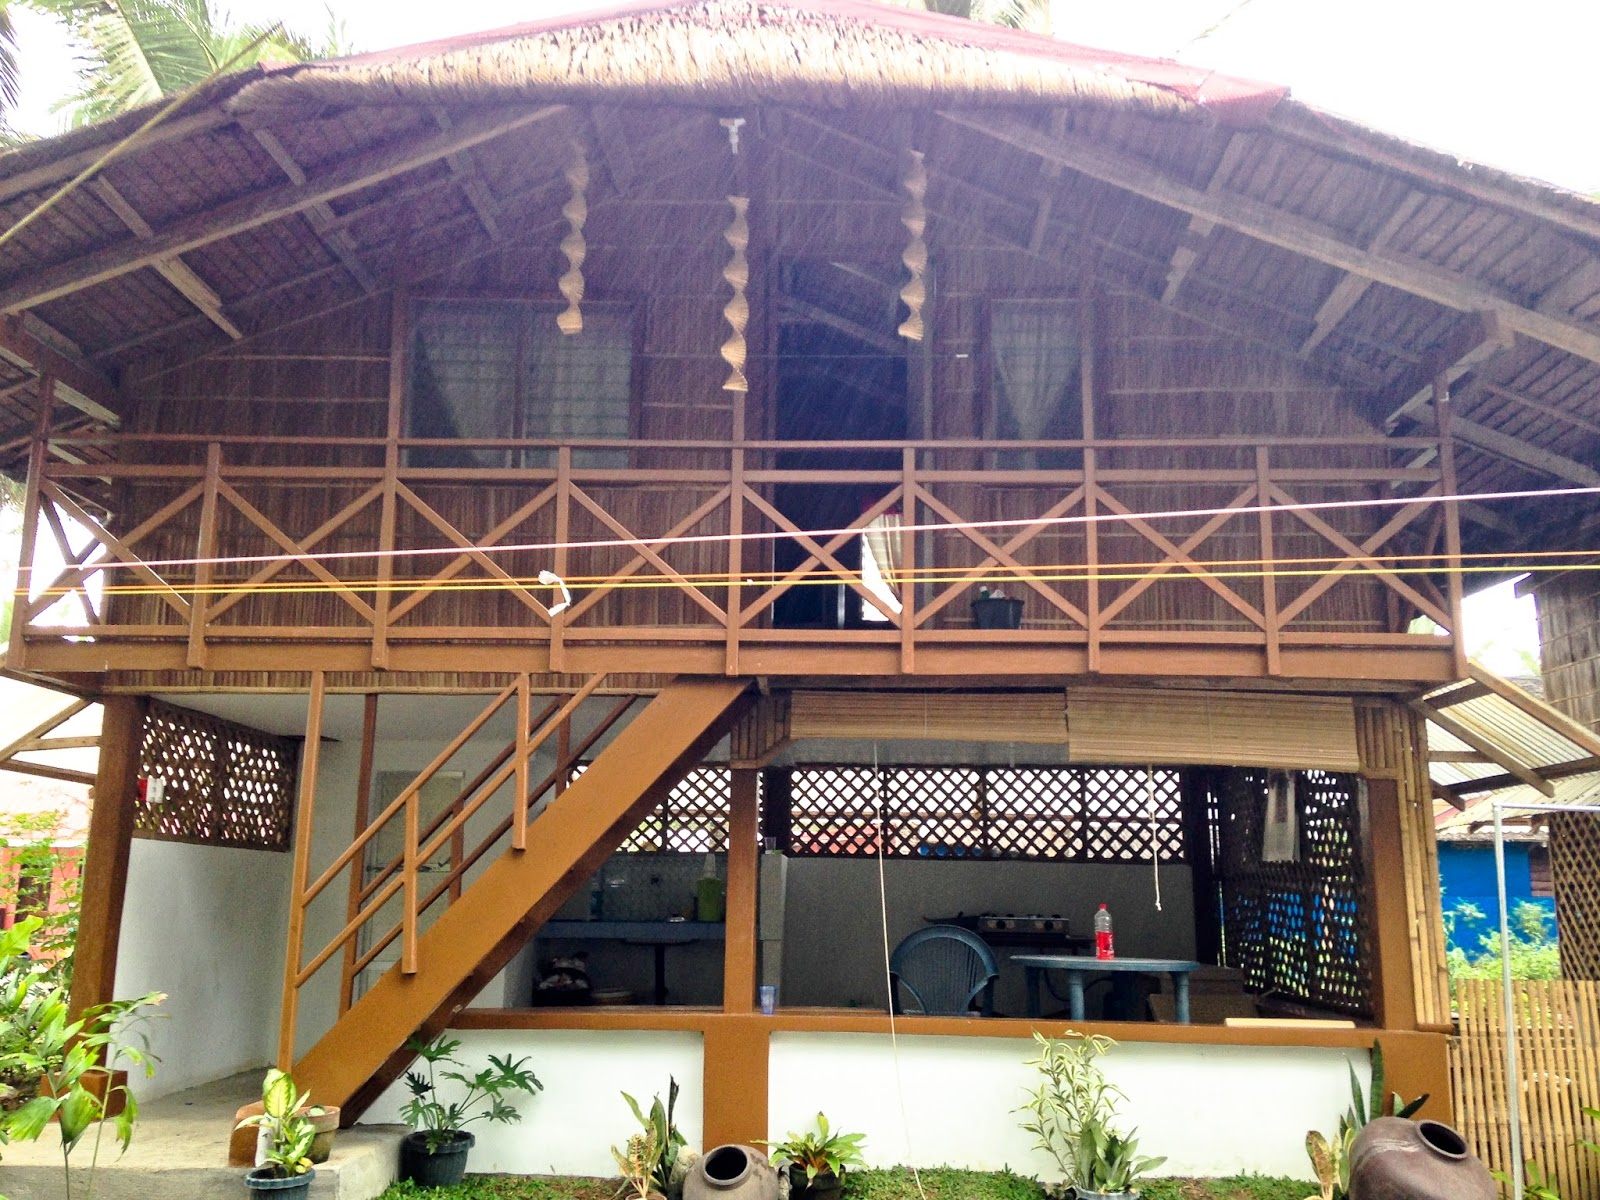 House design nipa hut - A Two Storey Nipa Hut W Own Cr Dining Kitchen And A Big Room Good For 10 Pax